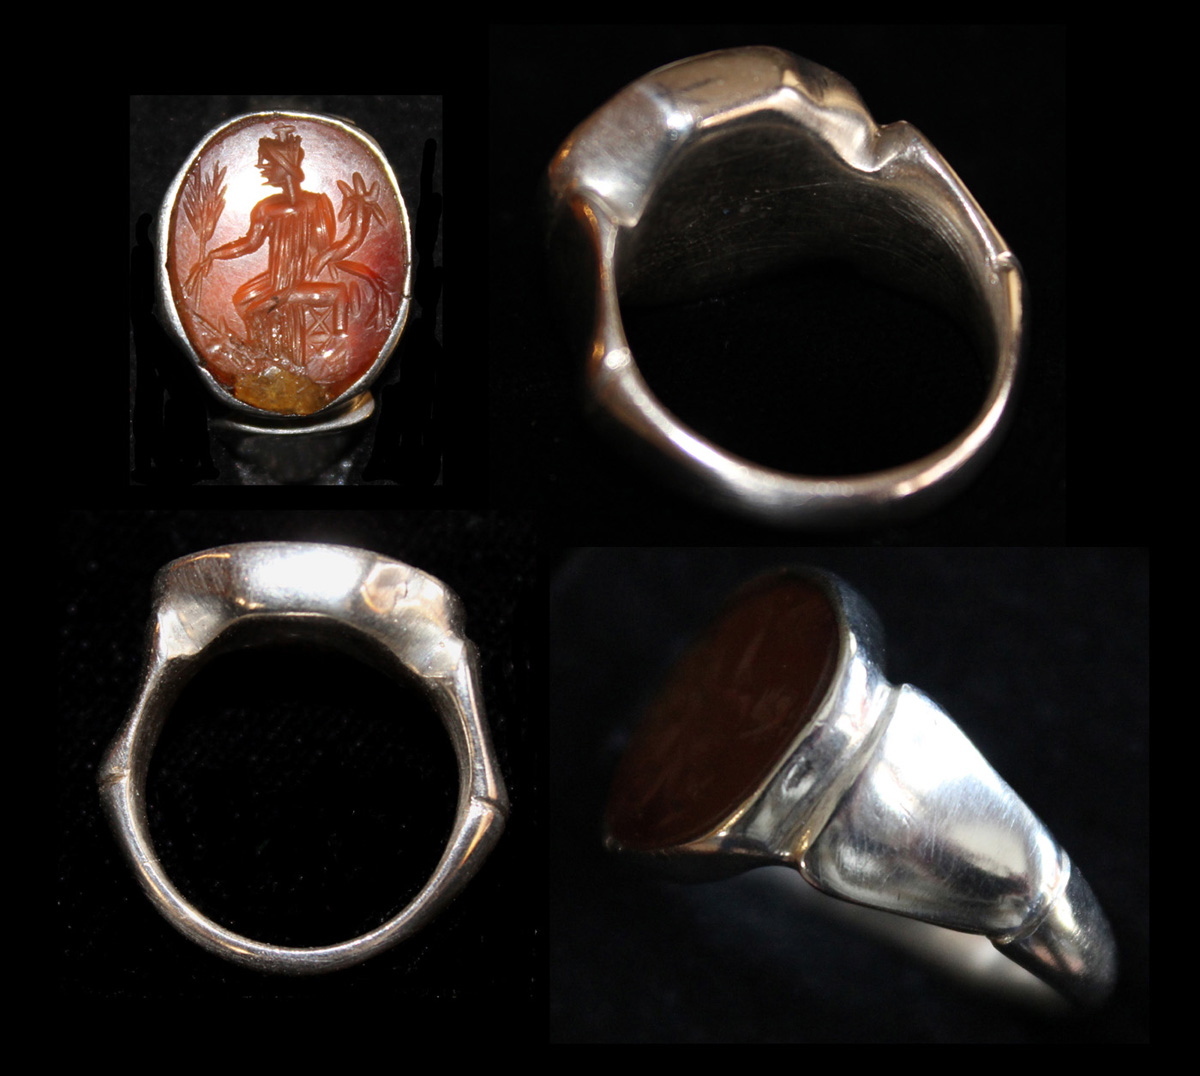 Ring, Roman, Silver with Carnelian Fortuna Intaglio, c. 3rd Cent